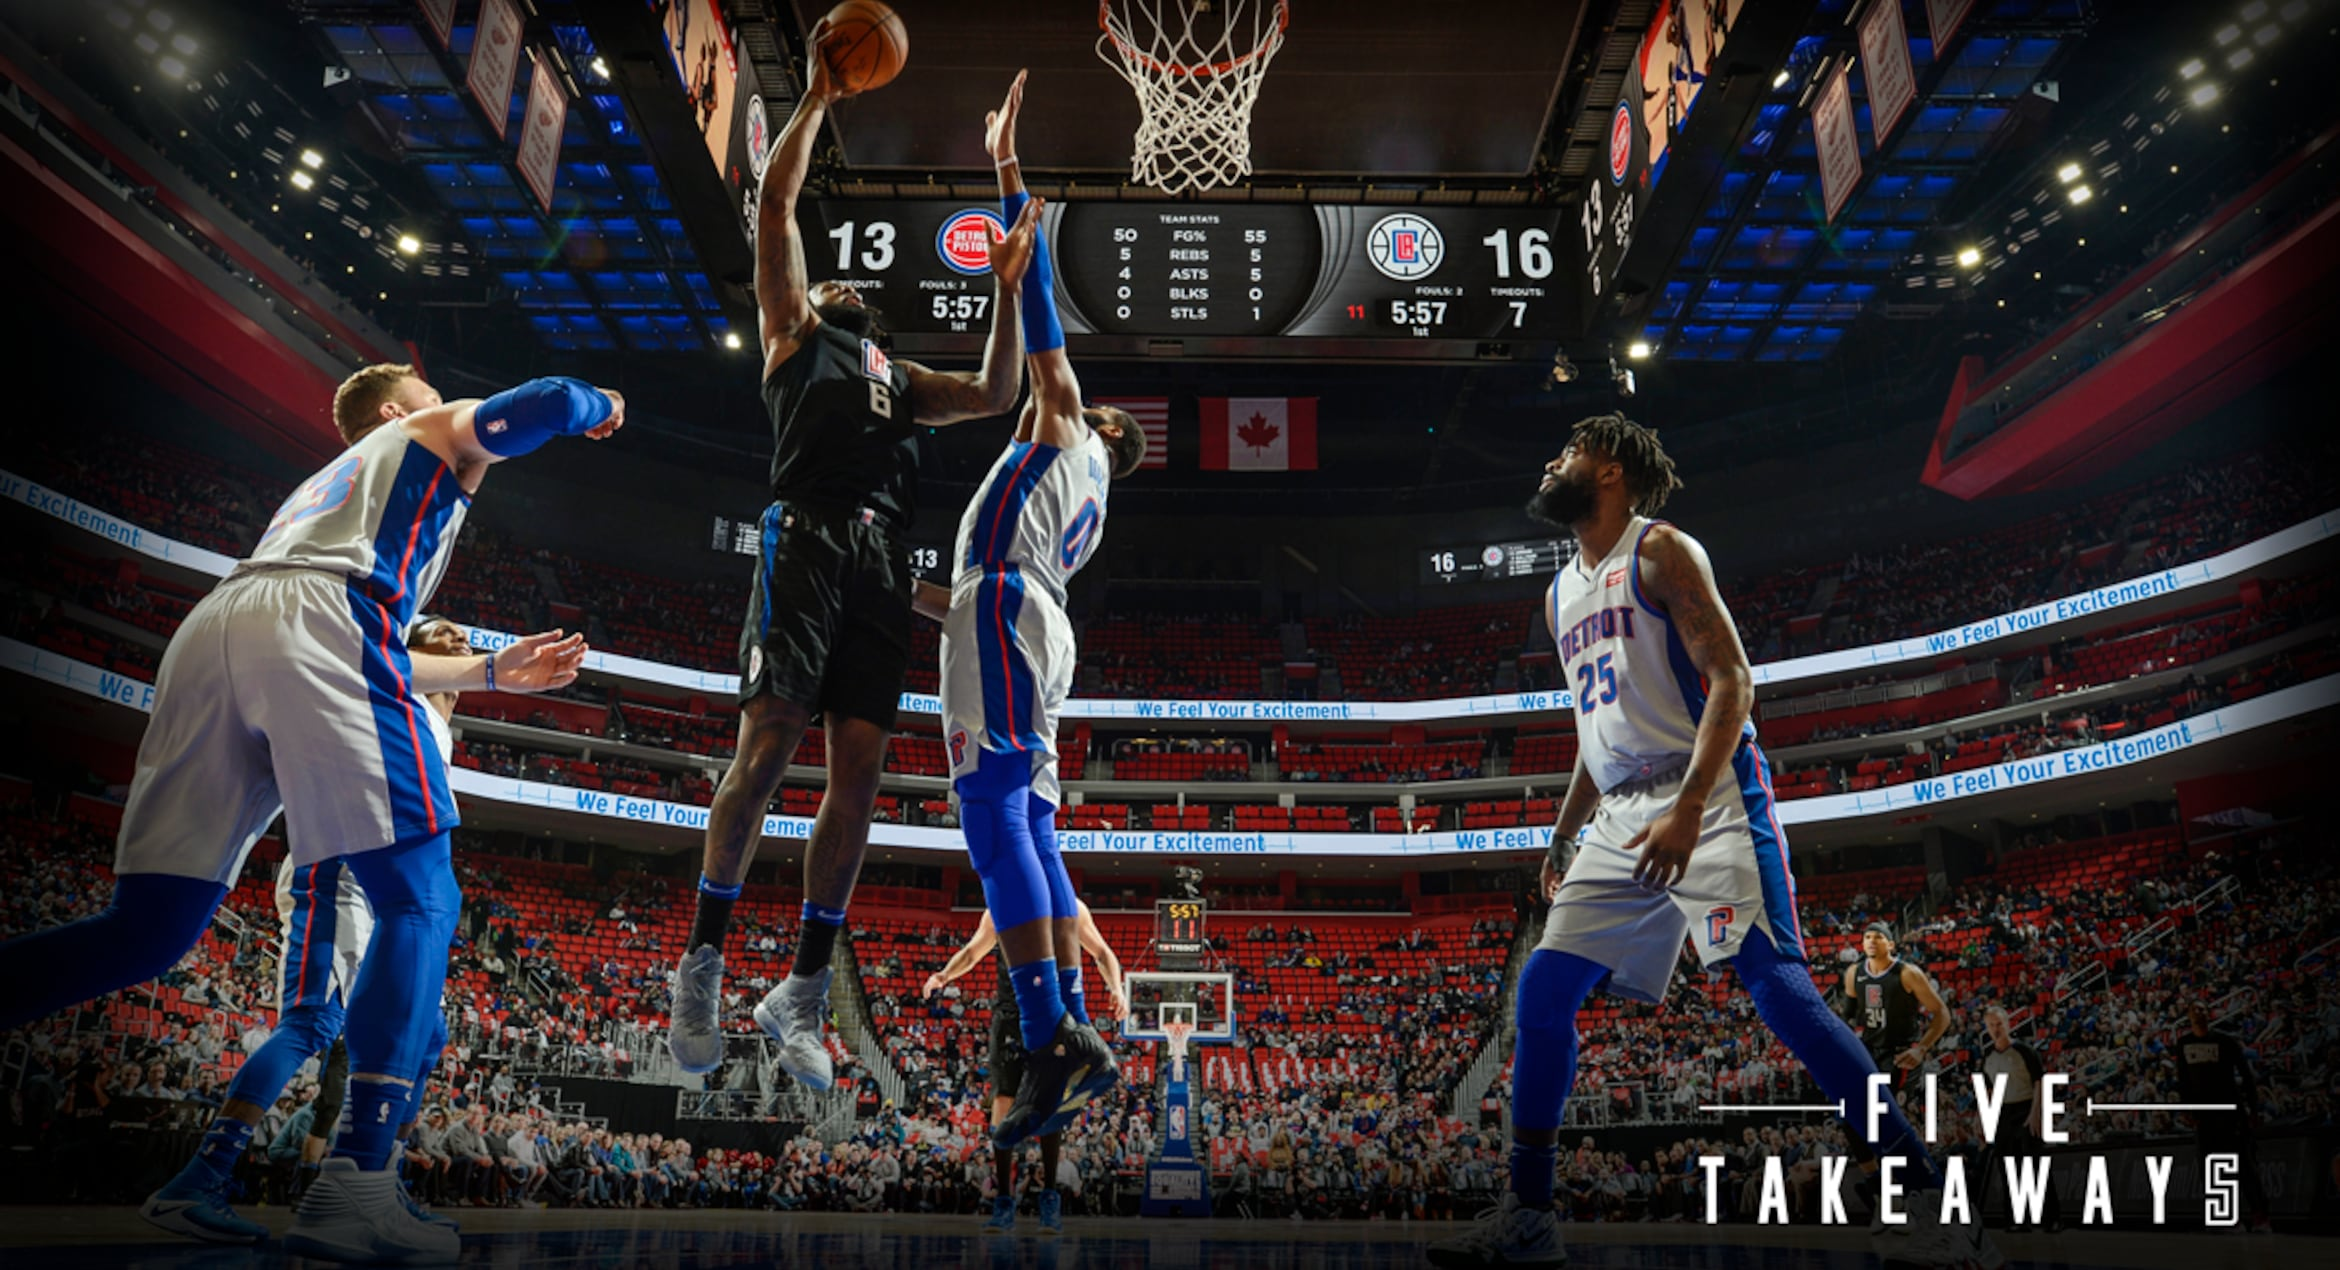 Five Takeaways: Clippers Surge Past Pistons in Detroit